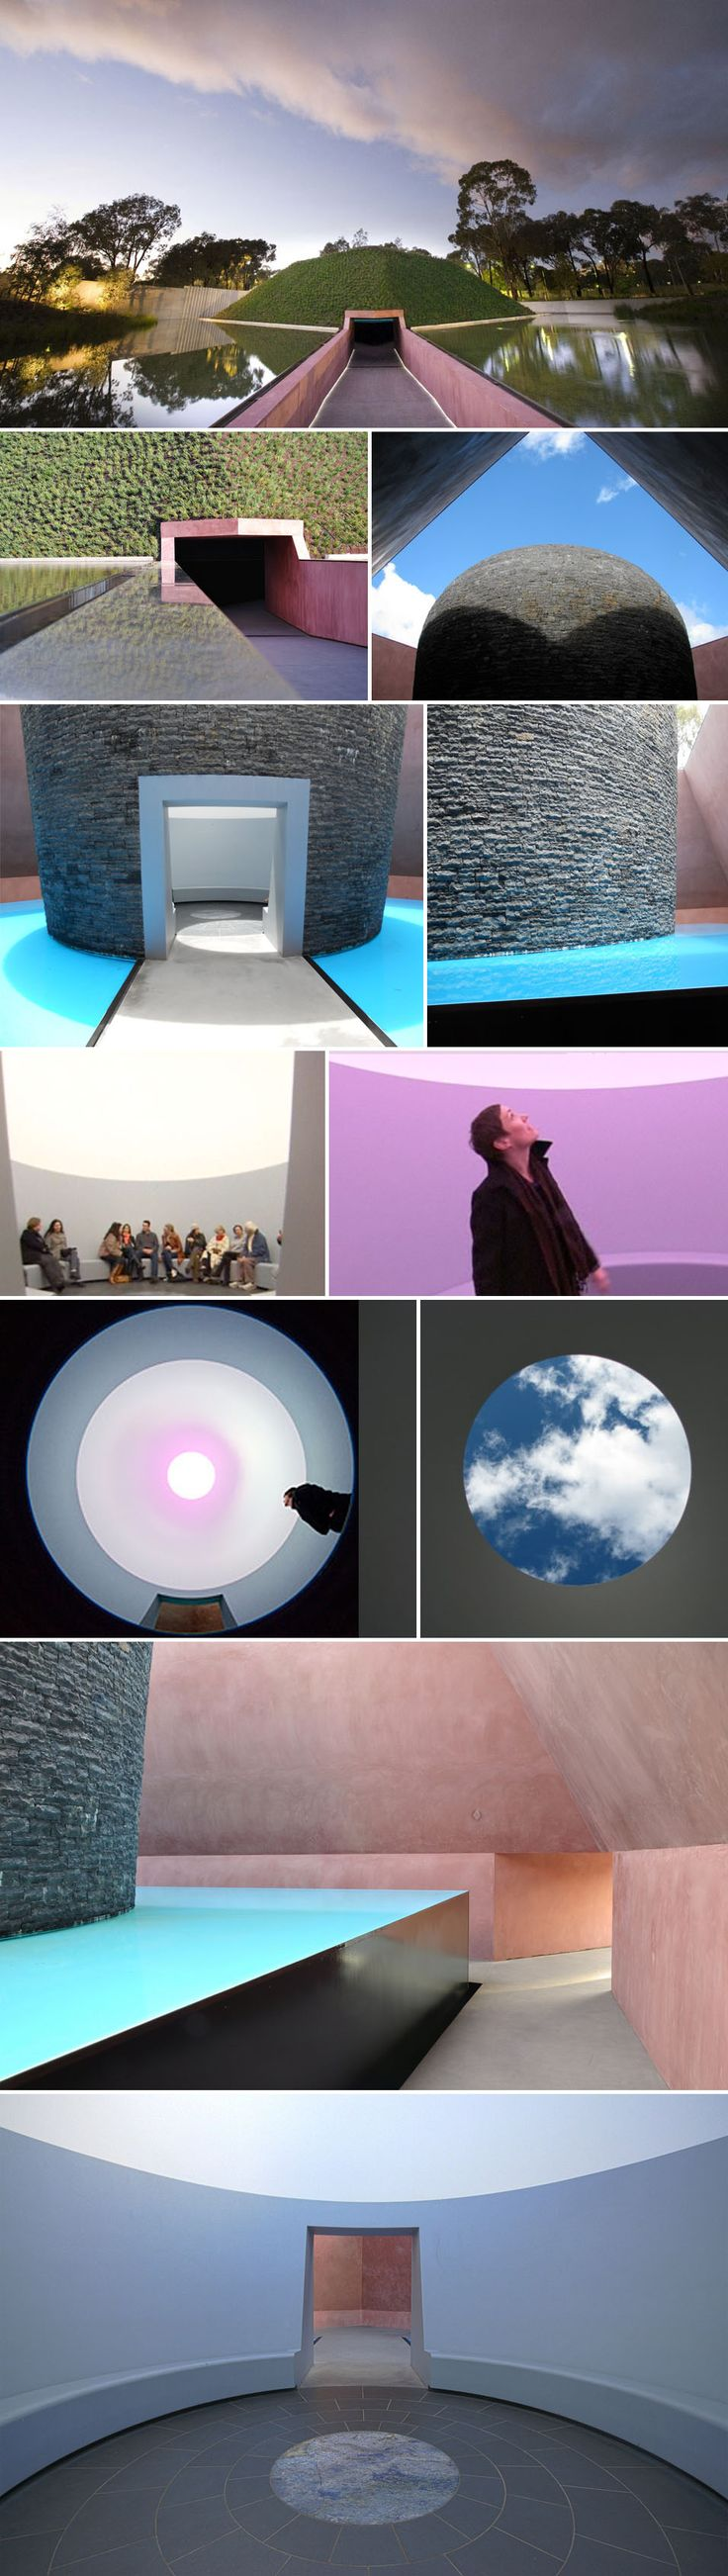 Within, without: James Turrell at Nat Gallery, Canberra. My first encounter w this artwork was on a cold evening, totally unexpected, and so fascinating